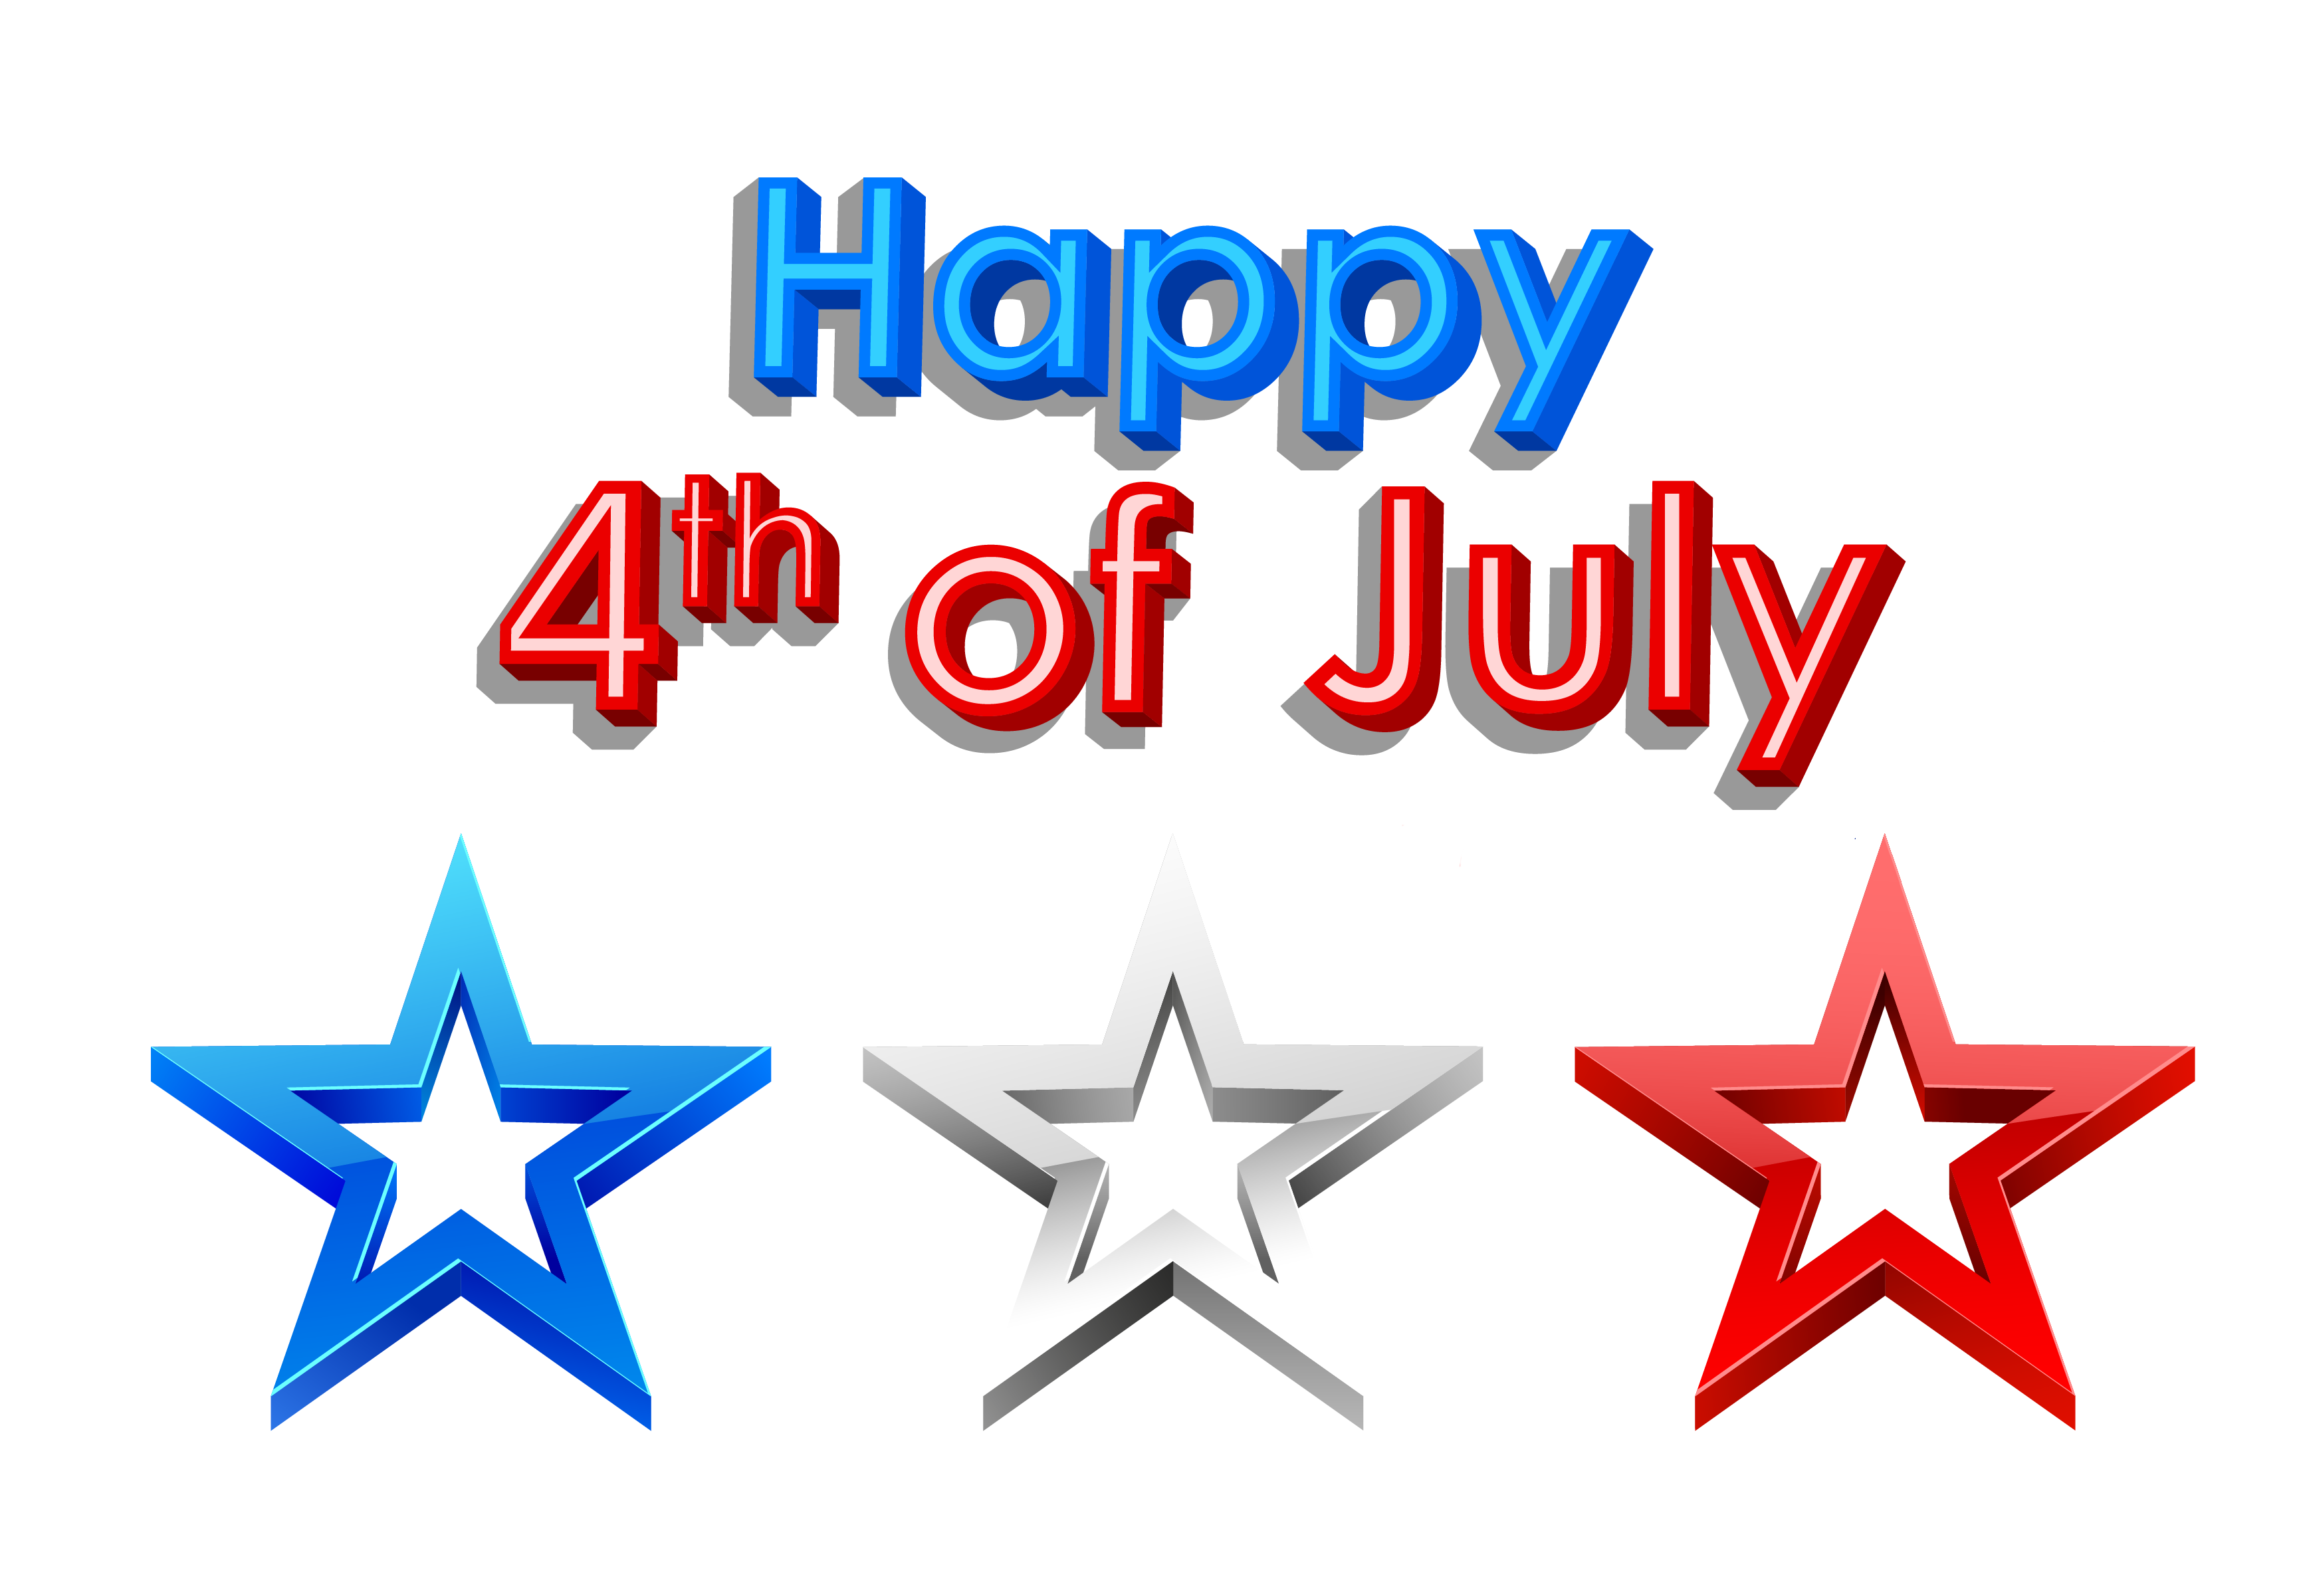 4th Of July Fireworks Clipart Png-4th of july fireworks clipart png-1